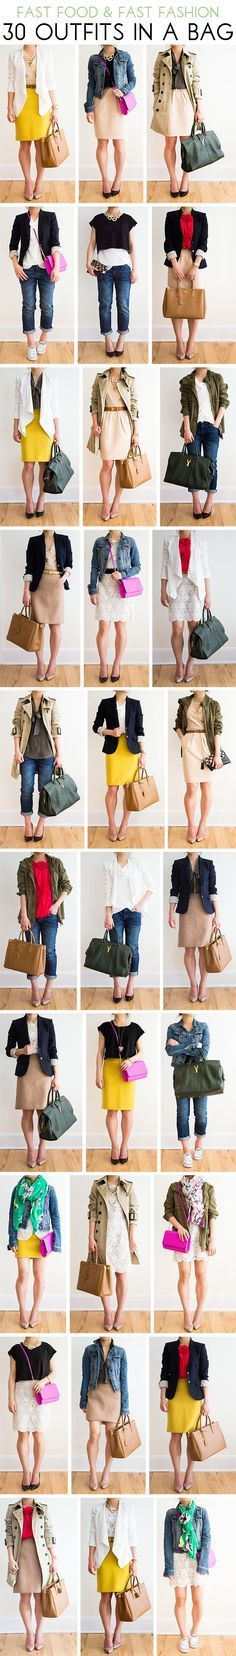 30 Outfits in a Bag: Boyfriend Jeans My absolute favorite look is third row down, far right.